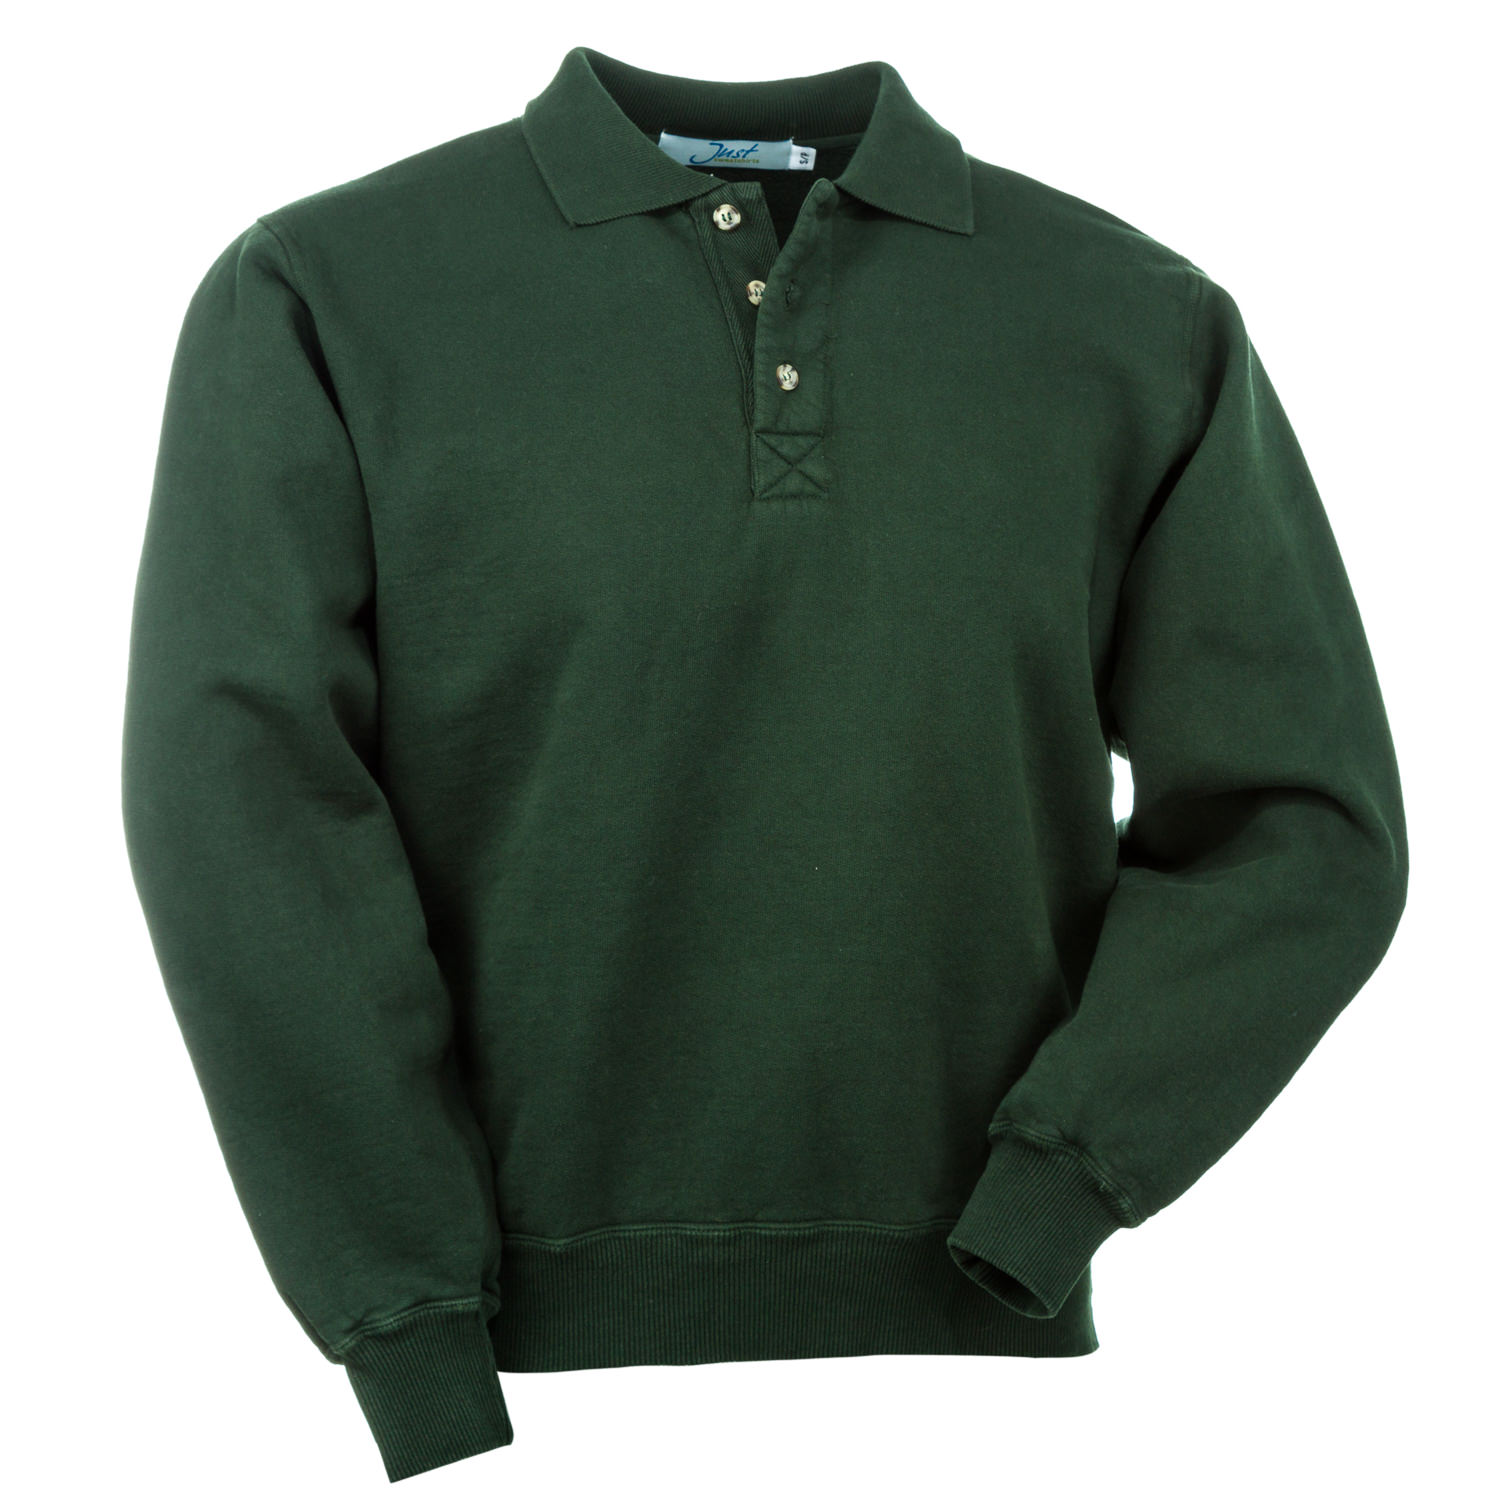 3 Button Polo Park Green 100% Cotton